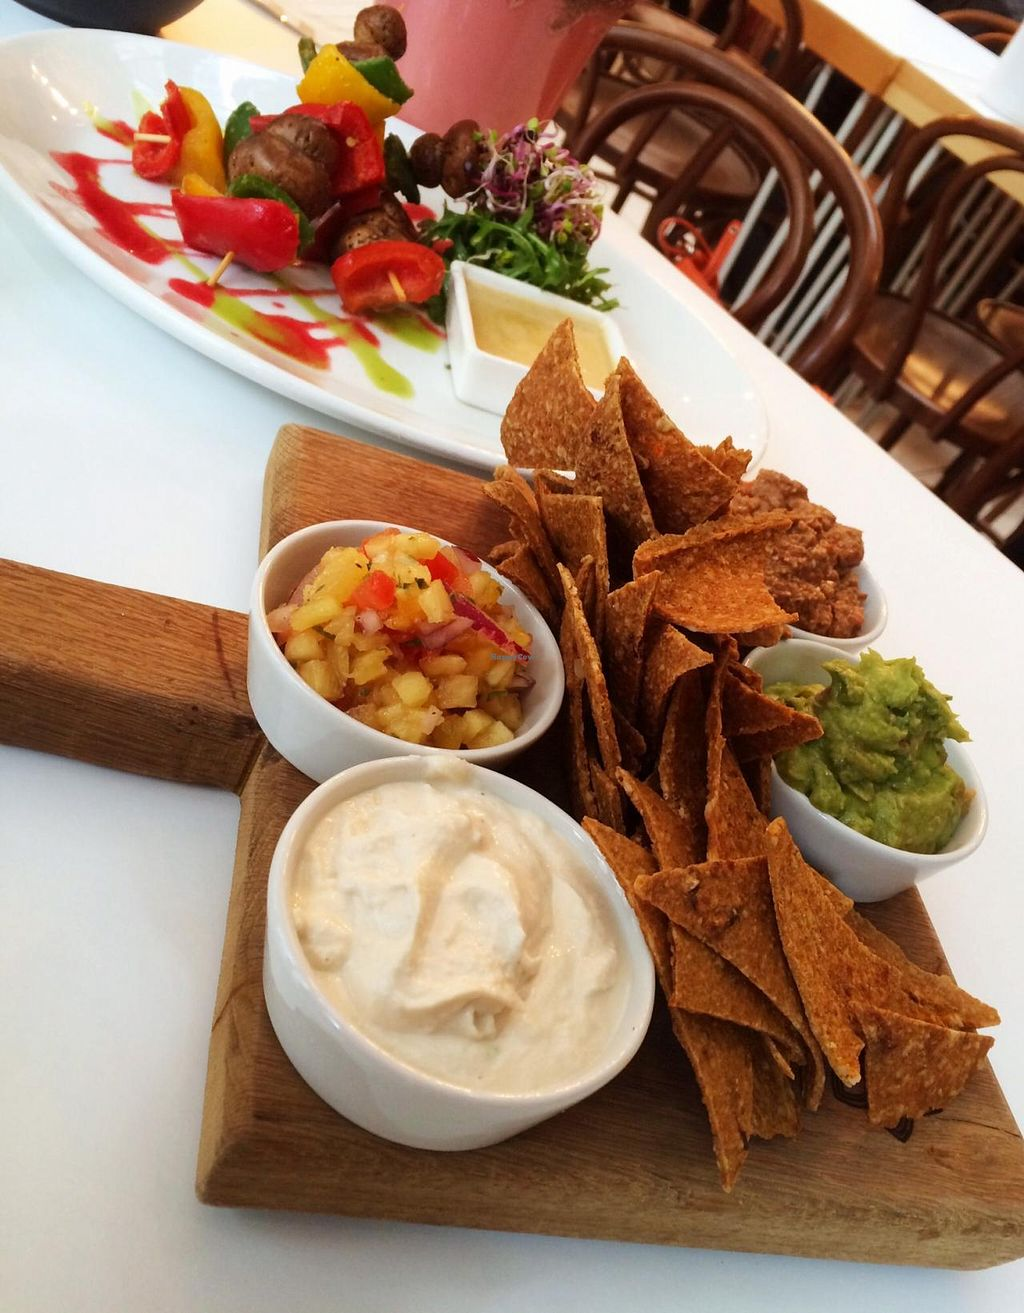 """Photo of Tanya's Cafe  by <a href=""""/members/profile/lysi"""">lysi</a> <br/>Vegan raw nachos with salsa, cashew nut cream cheeze, mushroom and walnut meat & raw kebabs  <br/> April 4, 2015  - <a href='/contact/abuse/image/50791/97775'>Report</a>"""